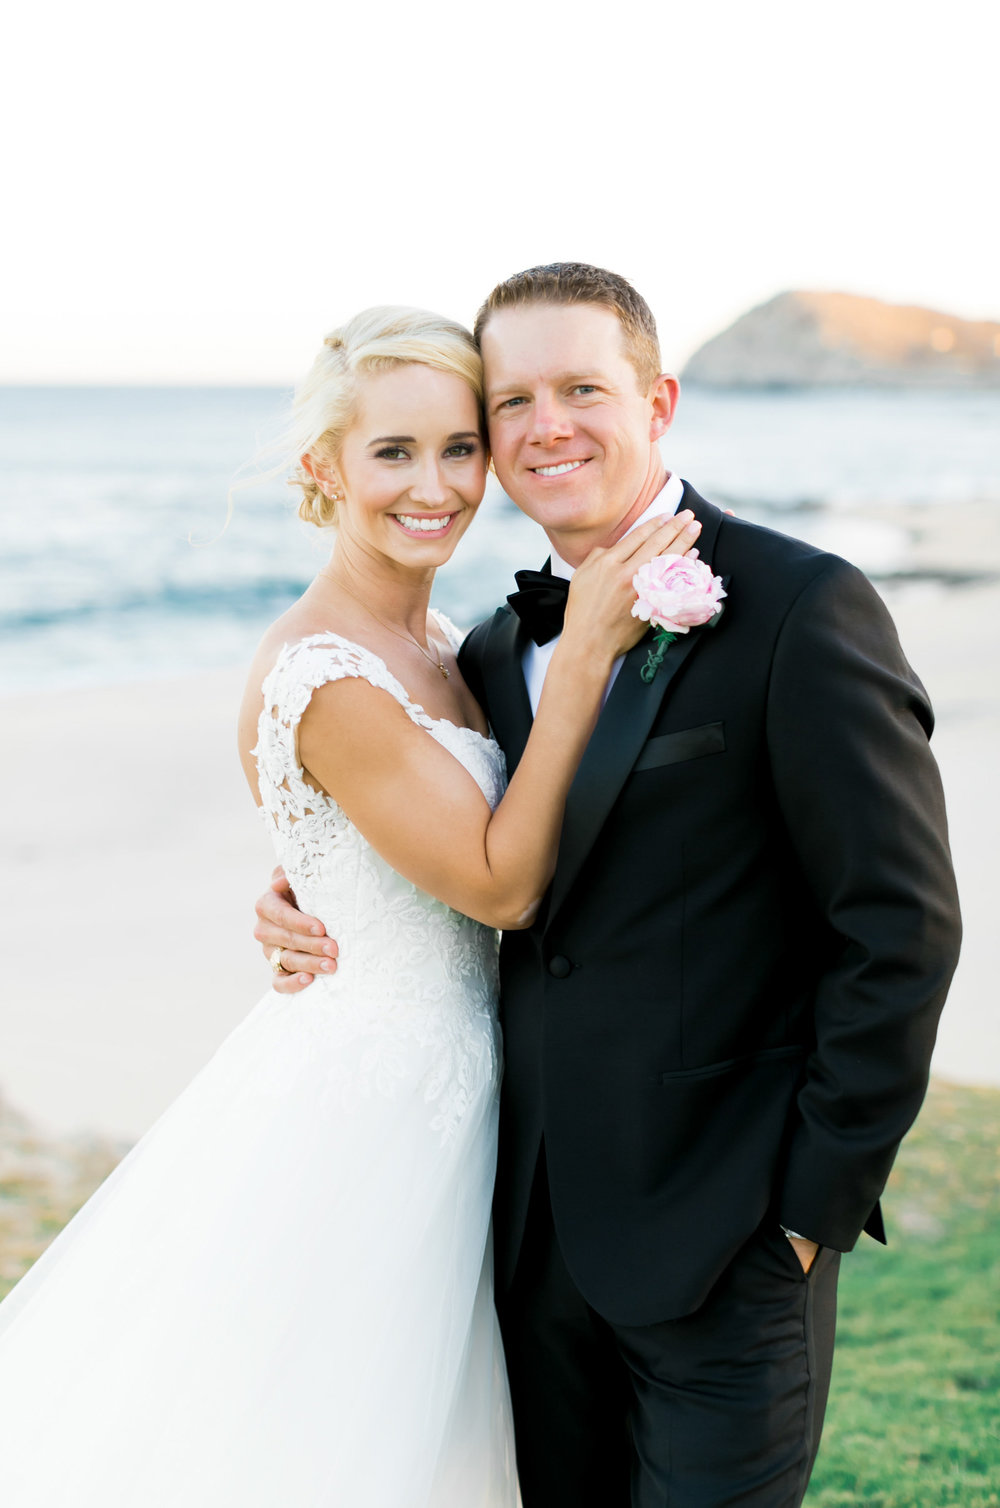 Hawaii-Destination-Wedding-Natalie-Schutt-Photography-Style-Me-Pretty_10.jpg